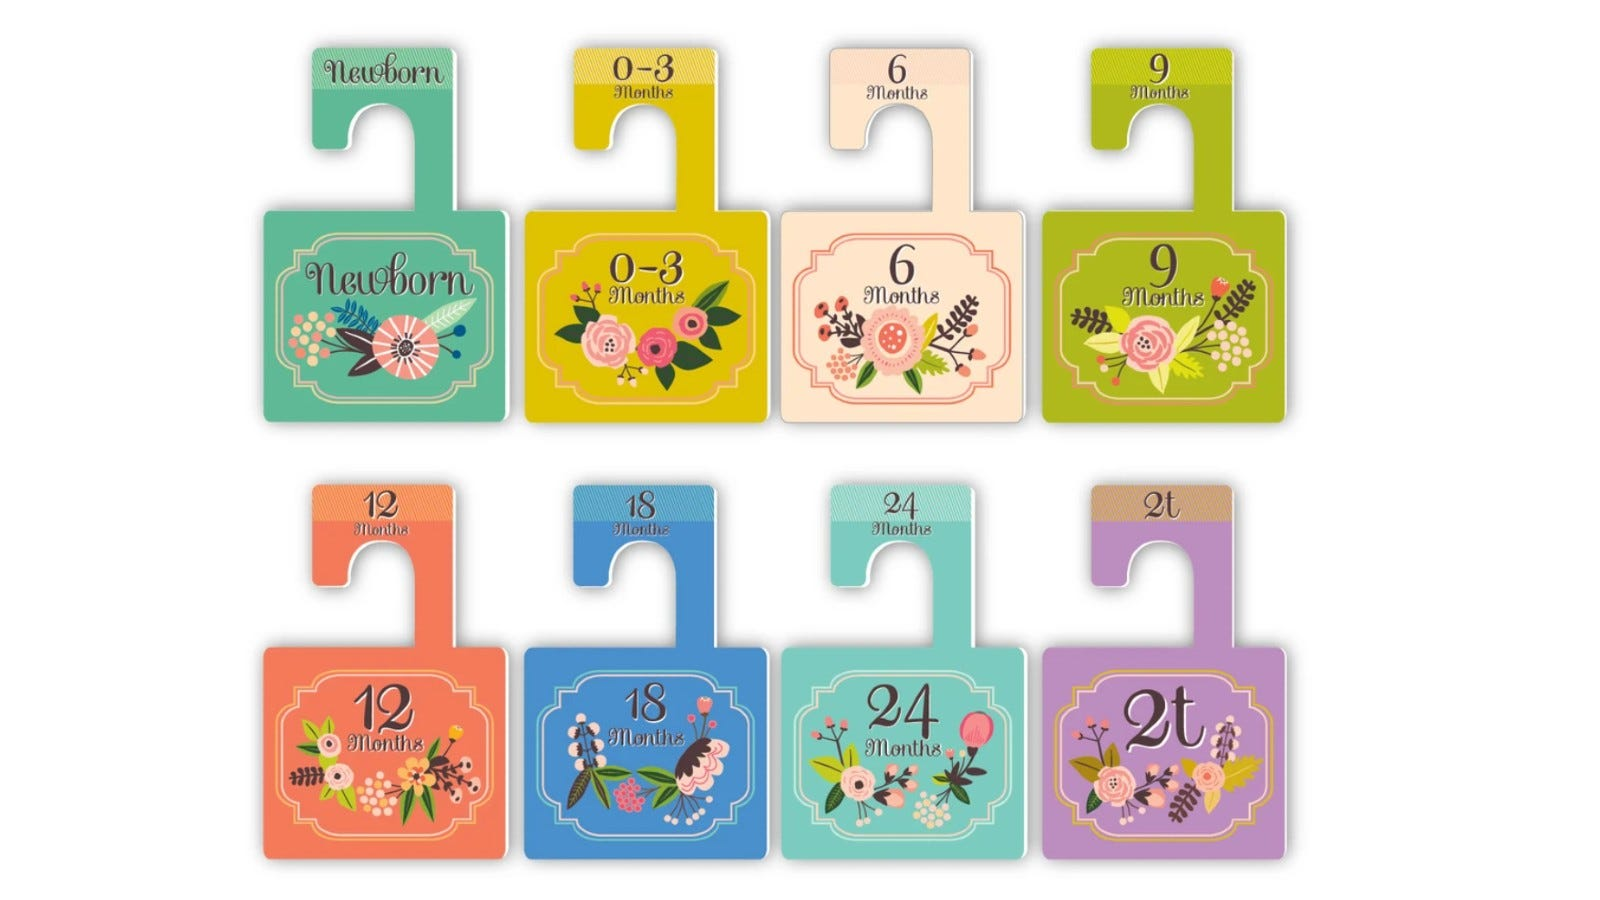 colorful hanger organizers saying different ages